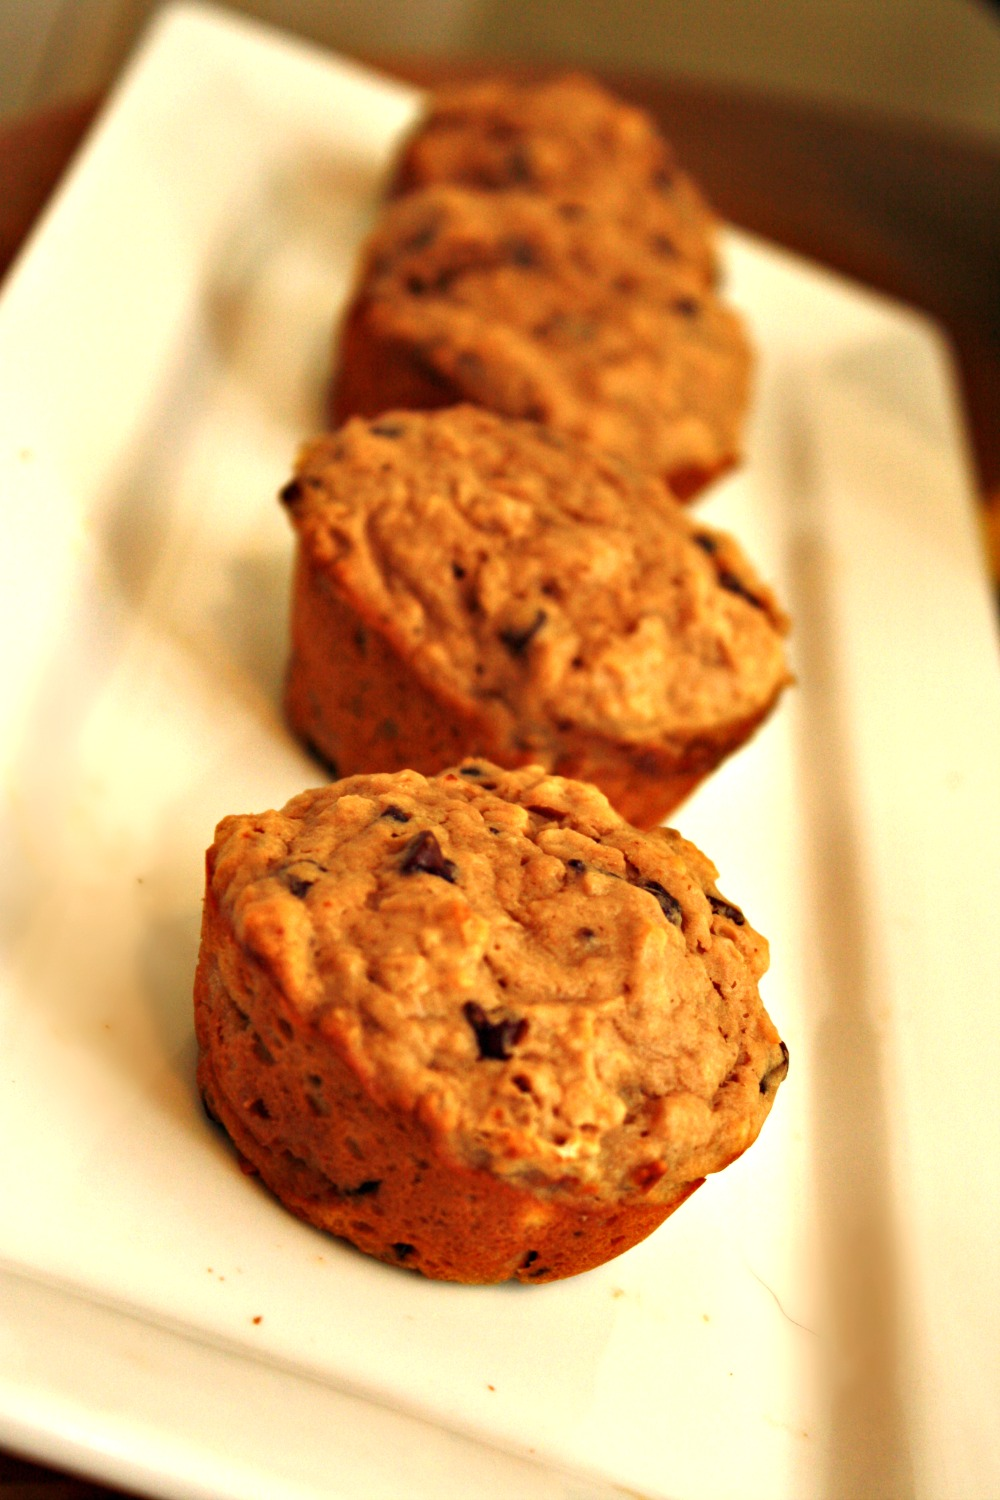 Oatmeal Peanut Butter Chocolate Chip Muffins